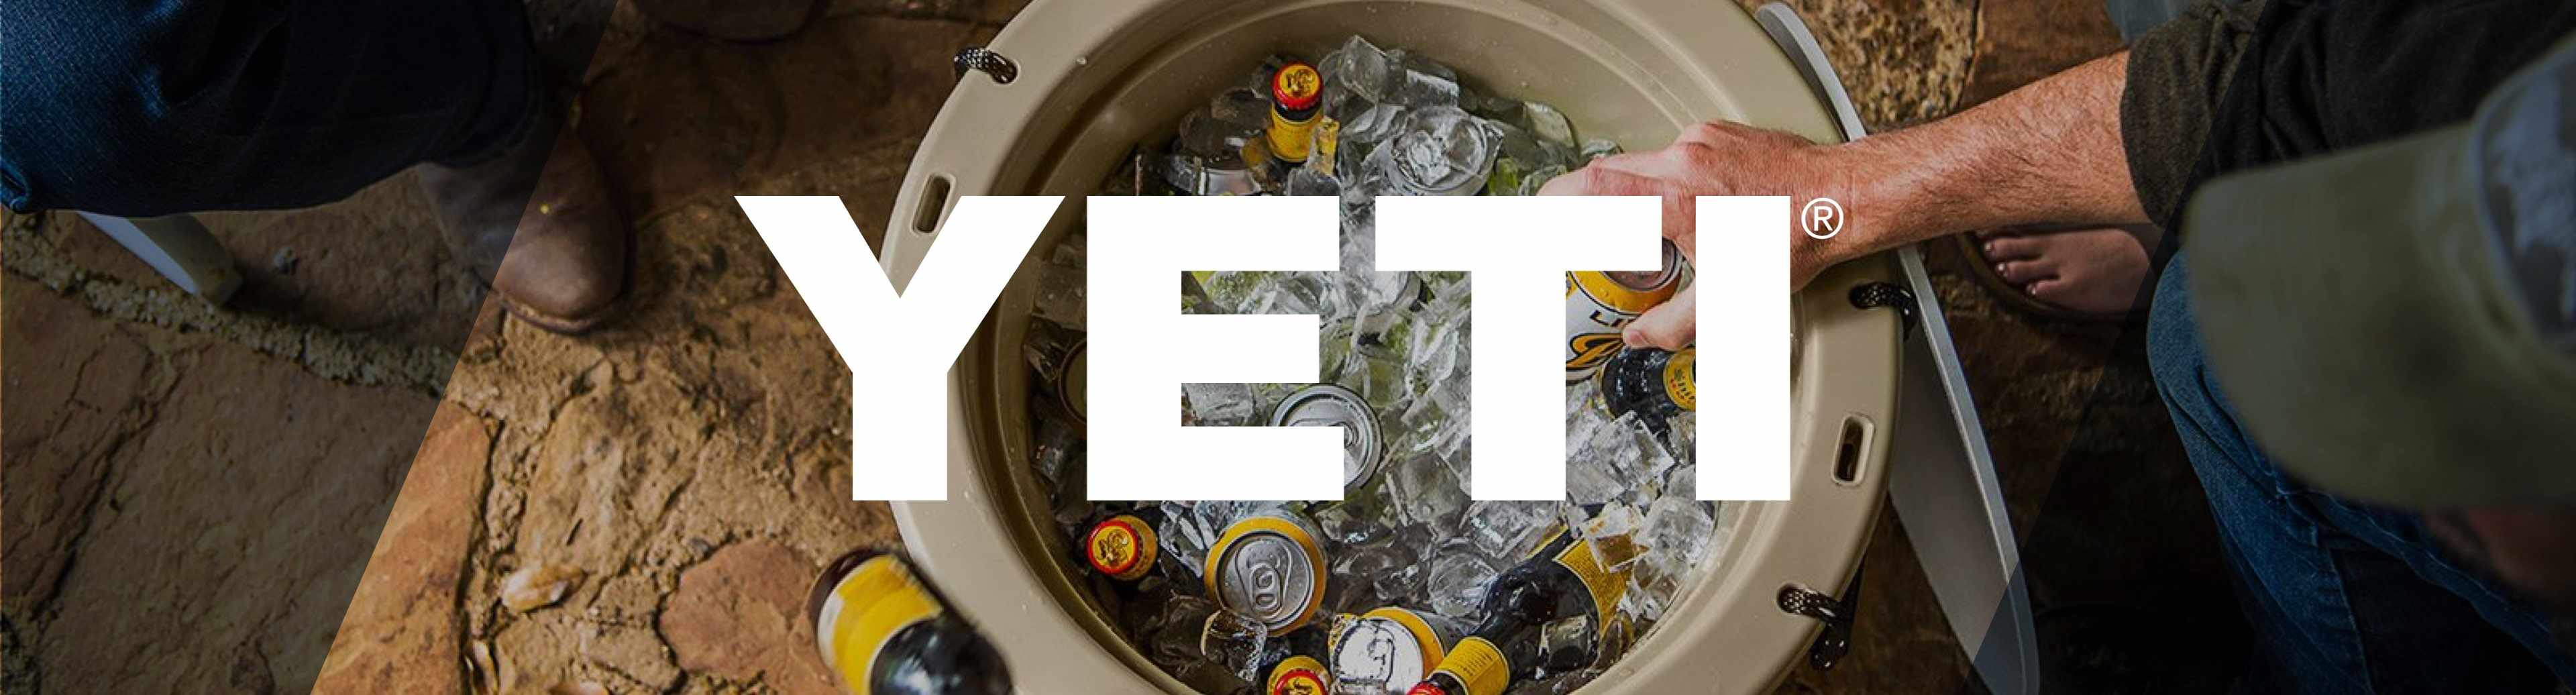 More about Yeti coolers at Peoples Hardware